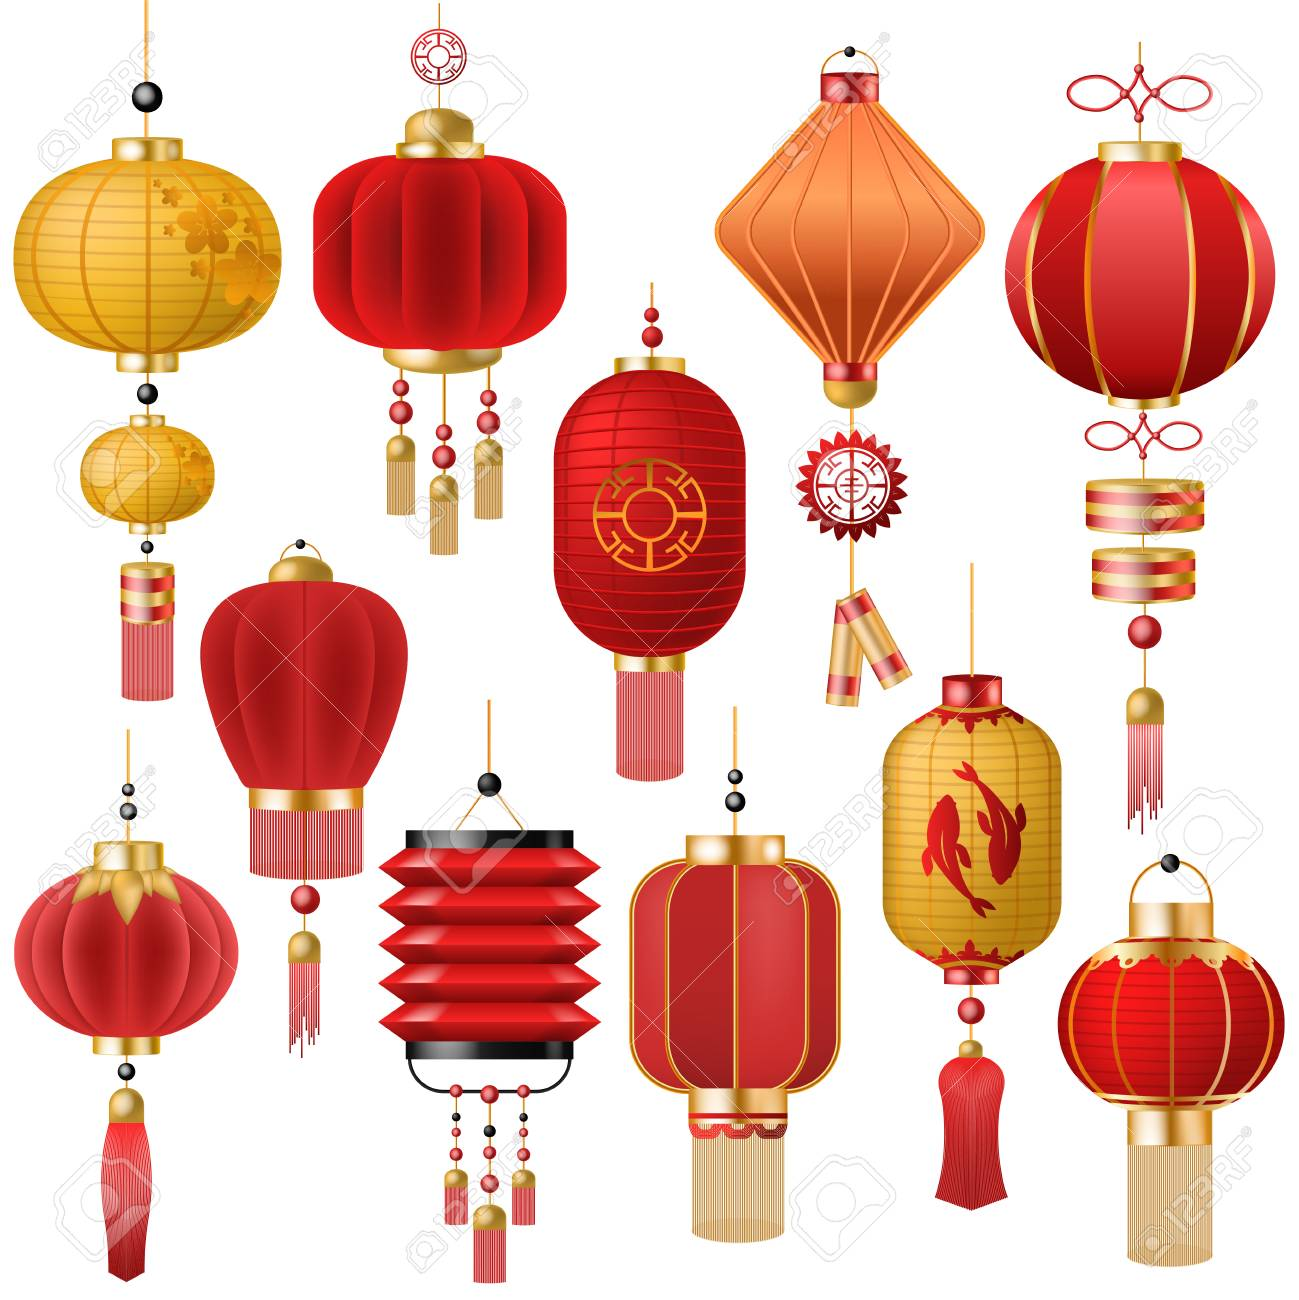 Chinese lantern vector traditional red lantern-light and oriental decoration of china culture for asian celebration illustration set of festival decor light isolated on white background - 102914097